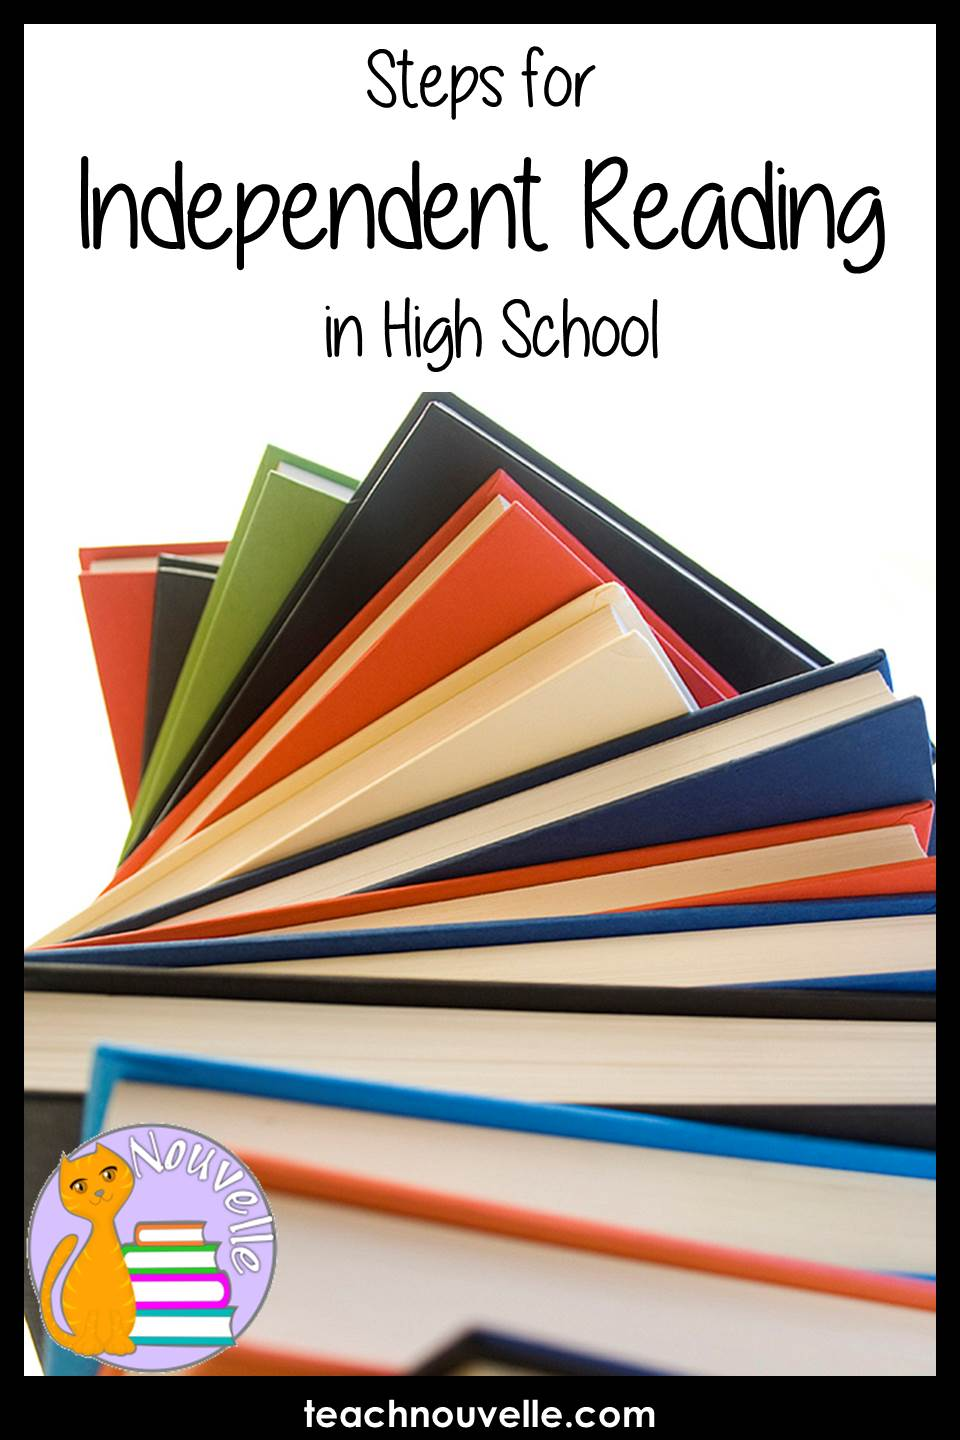 Steps for Independent Reading in High School